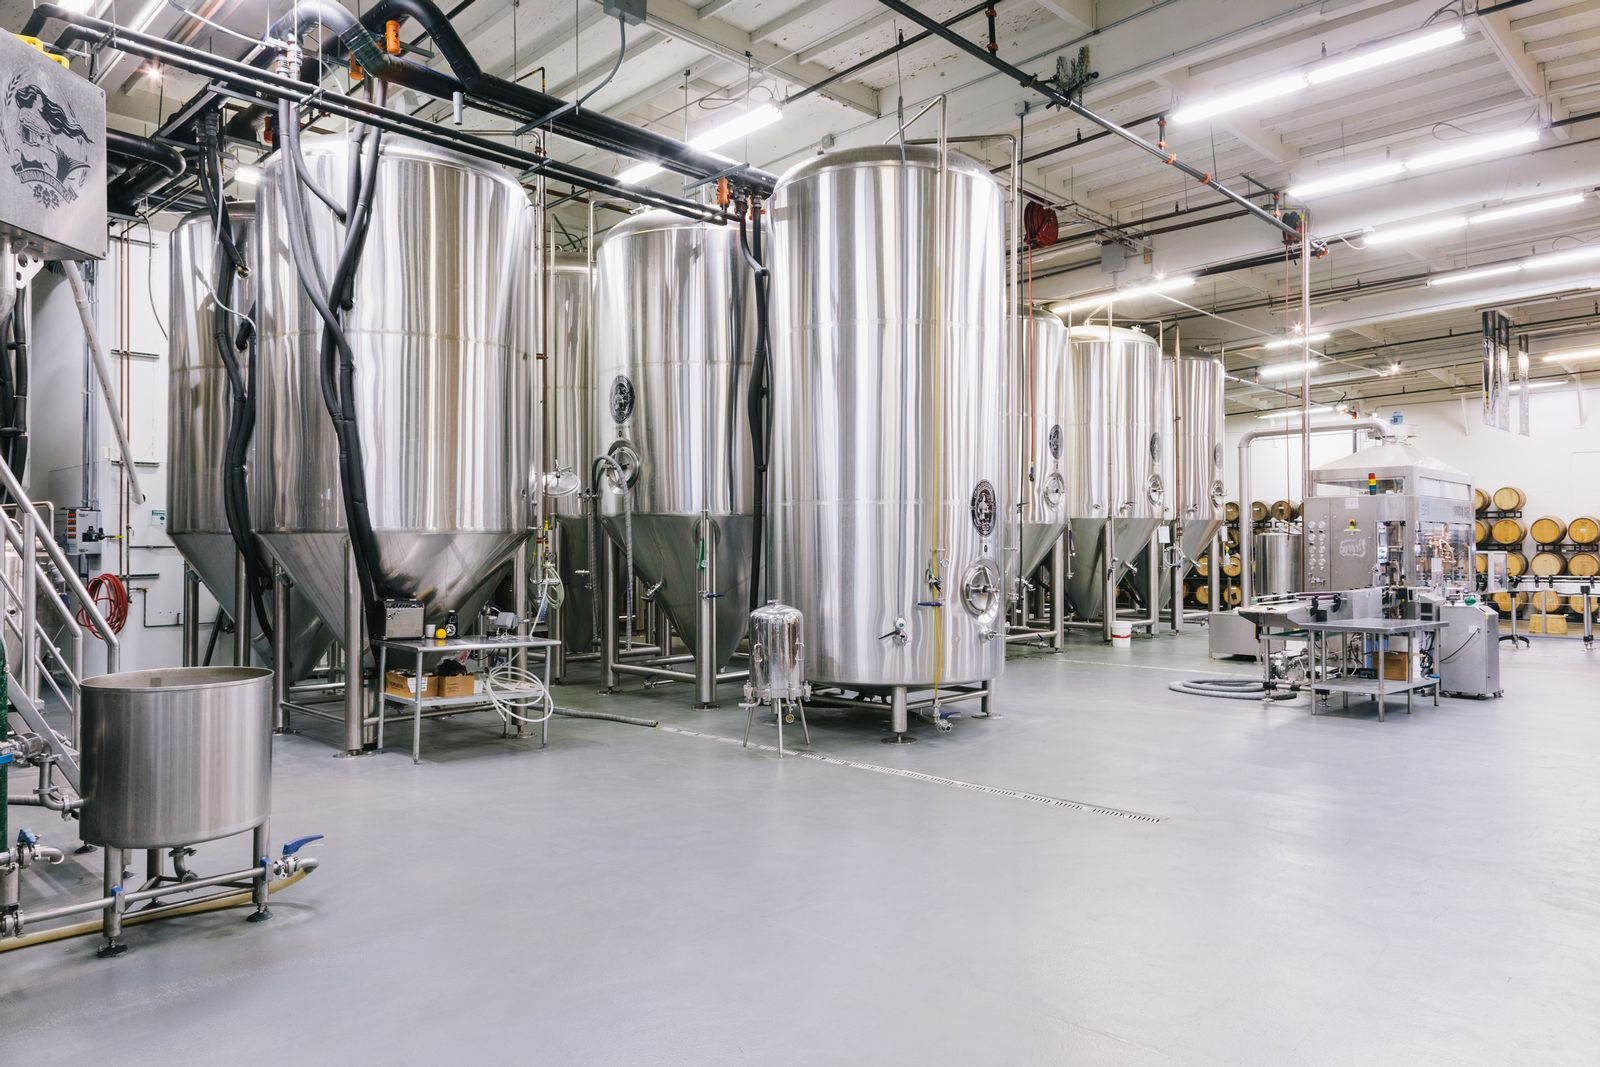 The family brewery in Coronodo California used Stonhard's product to shore up problems on the concrete floor.